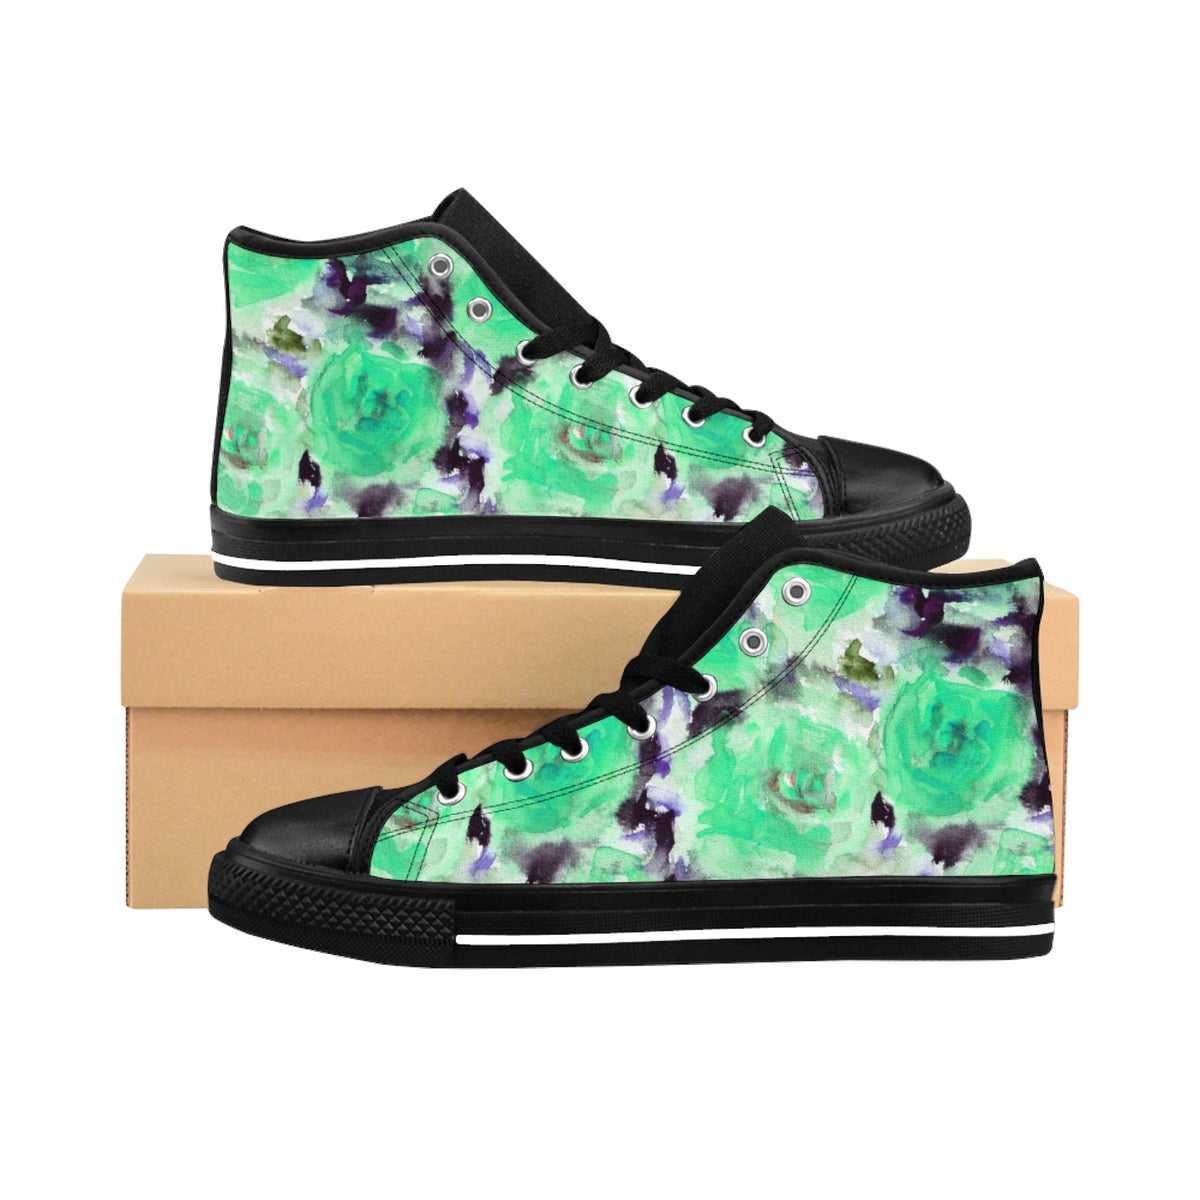 Turquoise Blue Rose Floral Print Designer Women's High Top Sneakers (US Size: 6-12)-Women's High Top Sneakers-US 9-Heidi Kimura Art LLC Turquoise Rose Floral Sneakers, Modern Feminine Minimalist Turquoise Blue Rose Floral Print Designer Women's High Top Sneakers (US Size: 6-12)